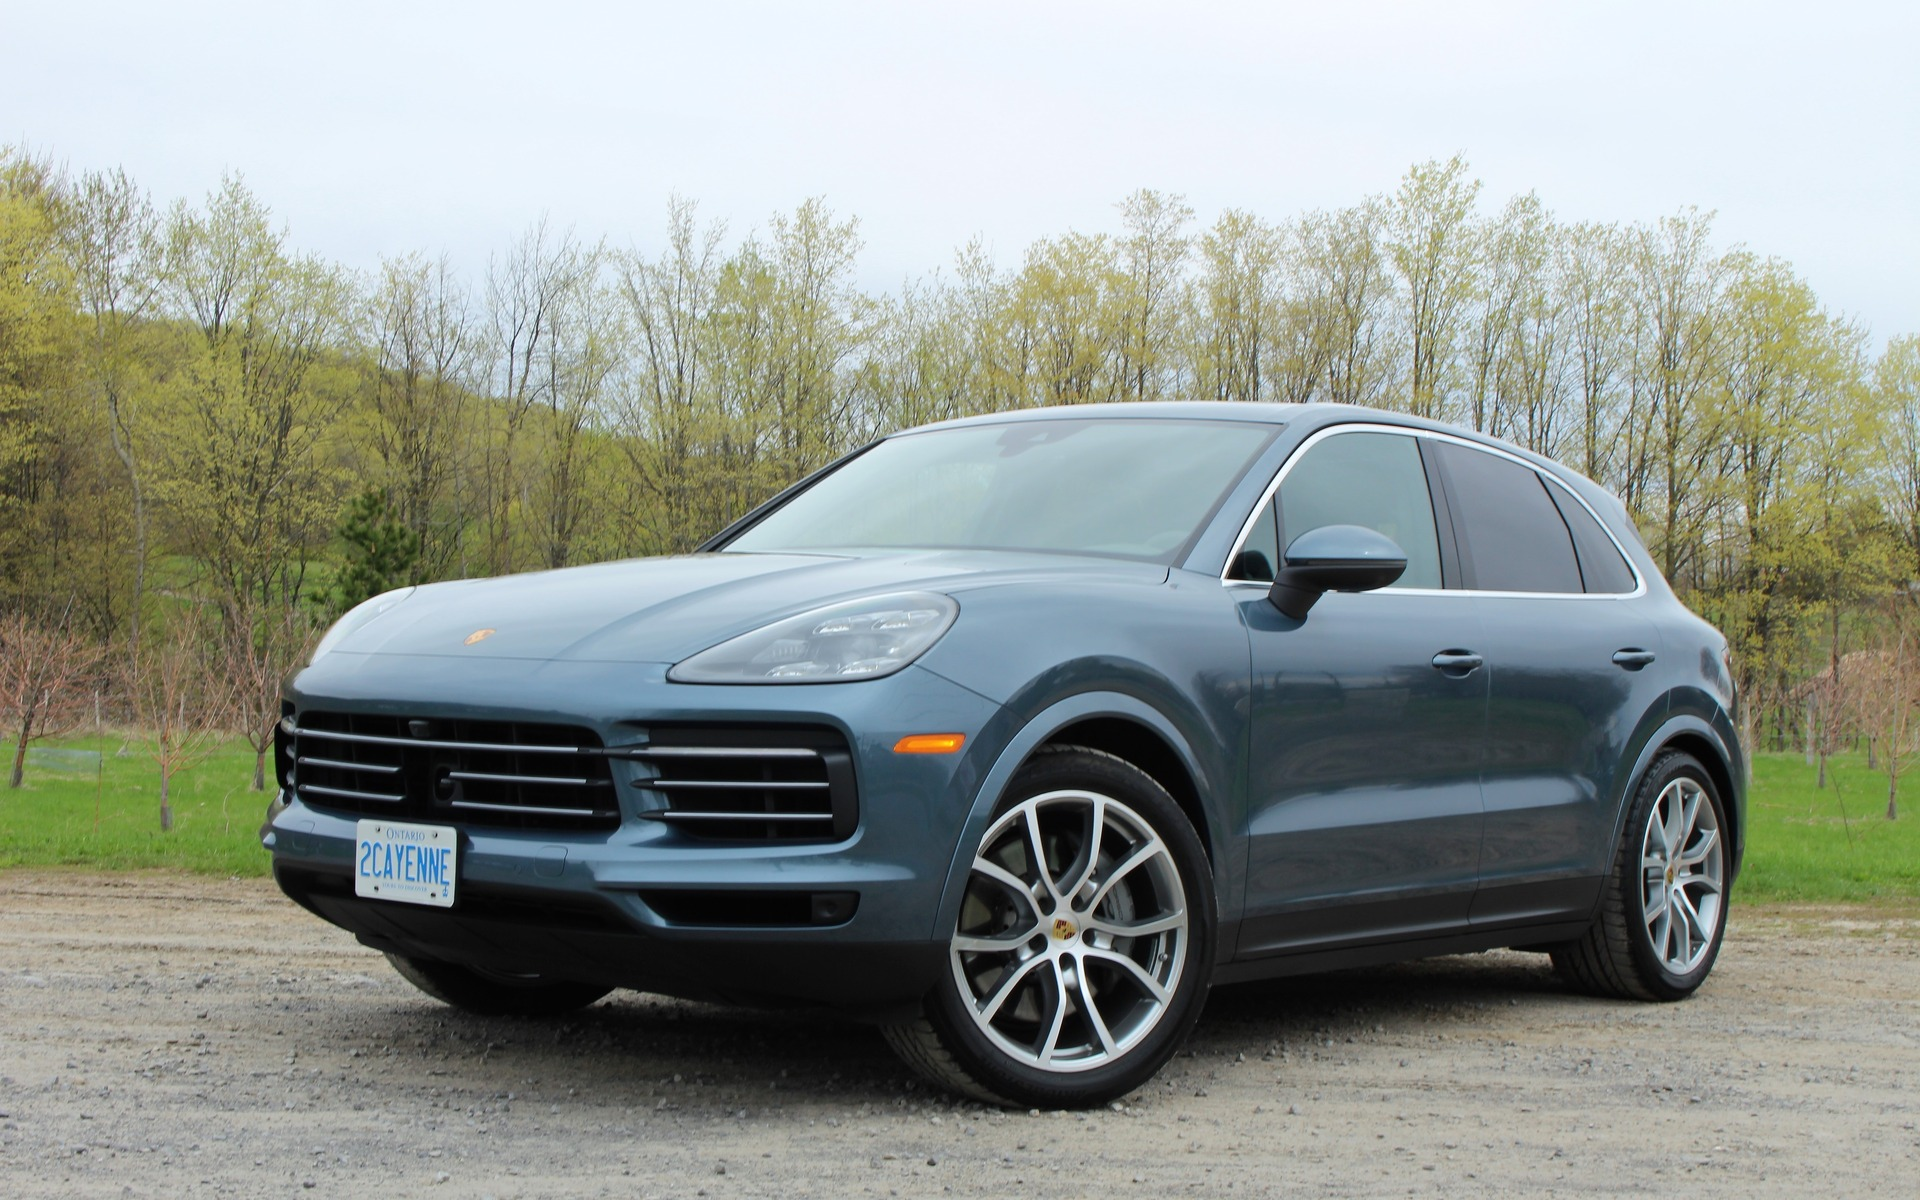 2019 Porsche Cayenne S A Little Too Tame The Car Guide